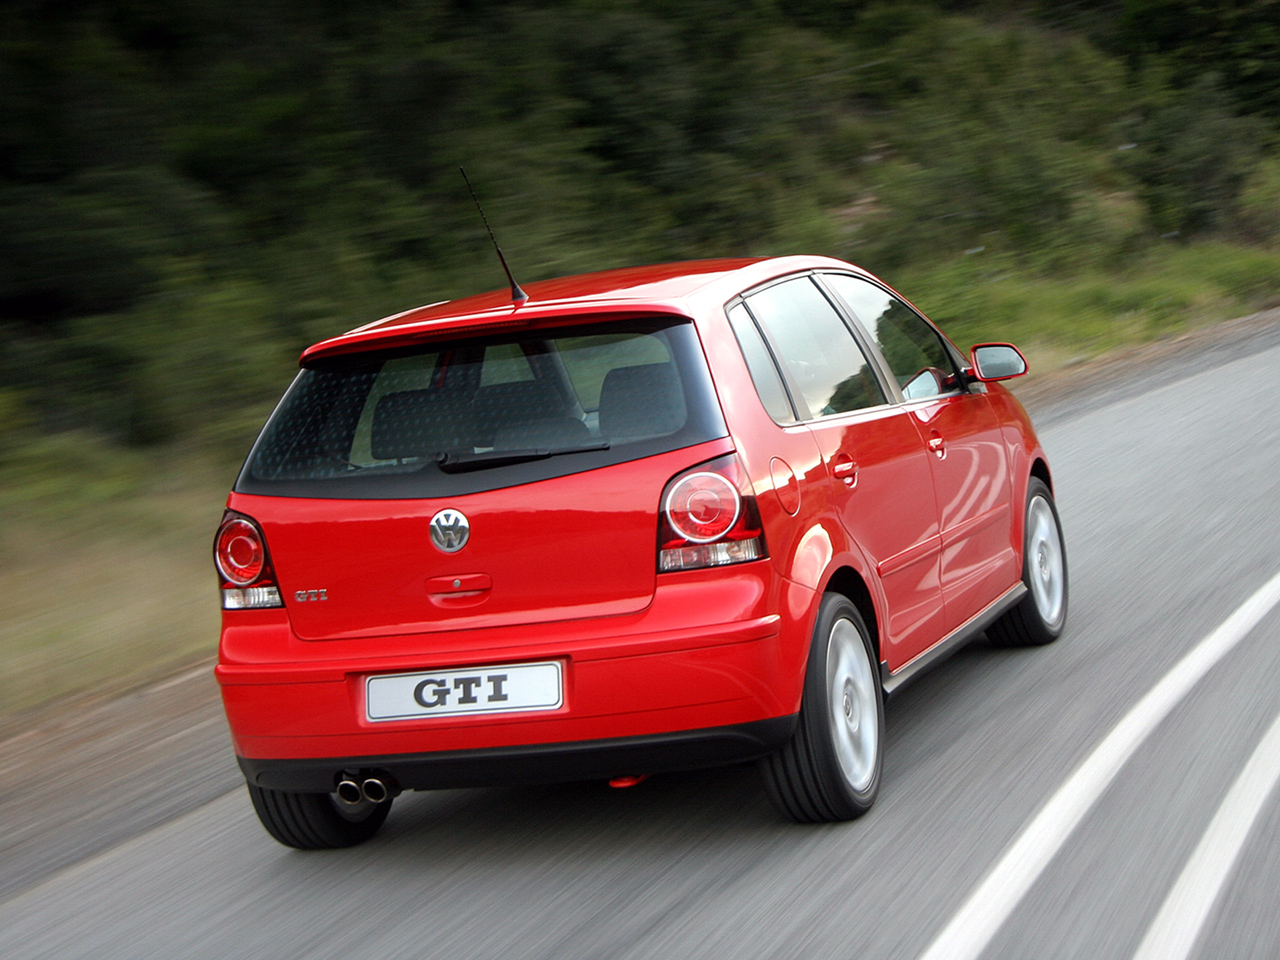 2005 Volkswagen Polo Hatchback 5-door